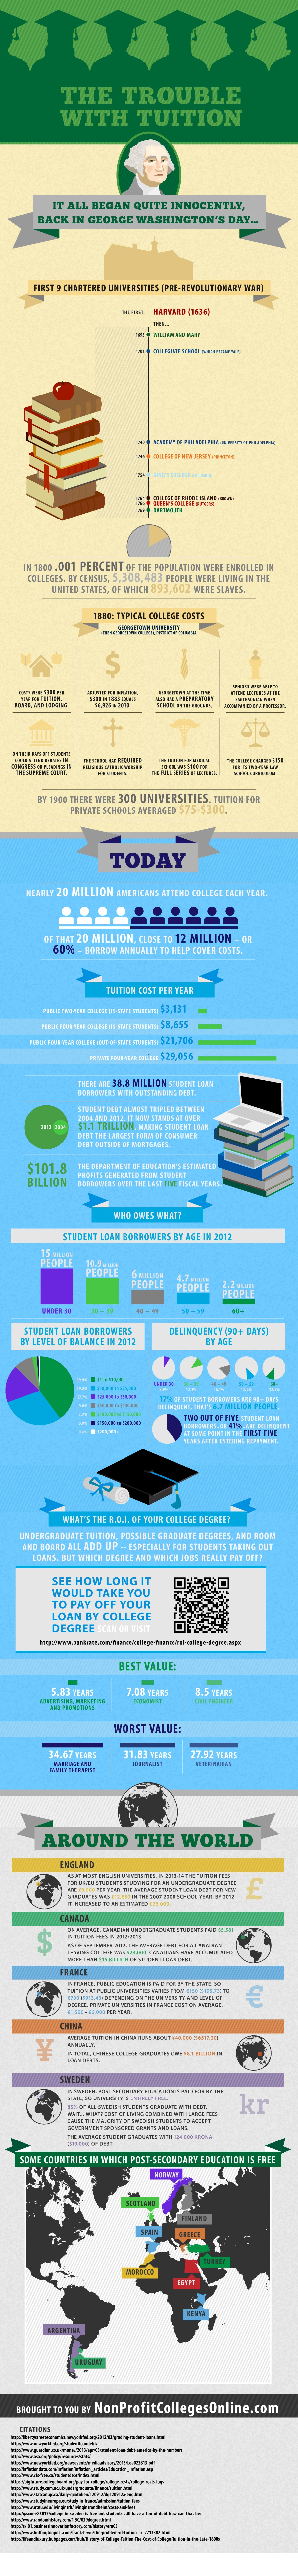 How Did The Student Loan Debt Crisis Started